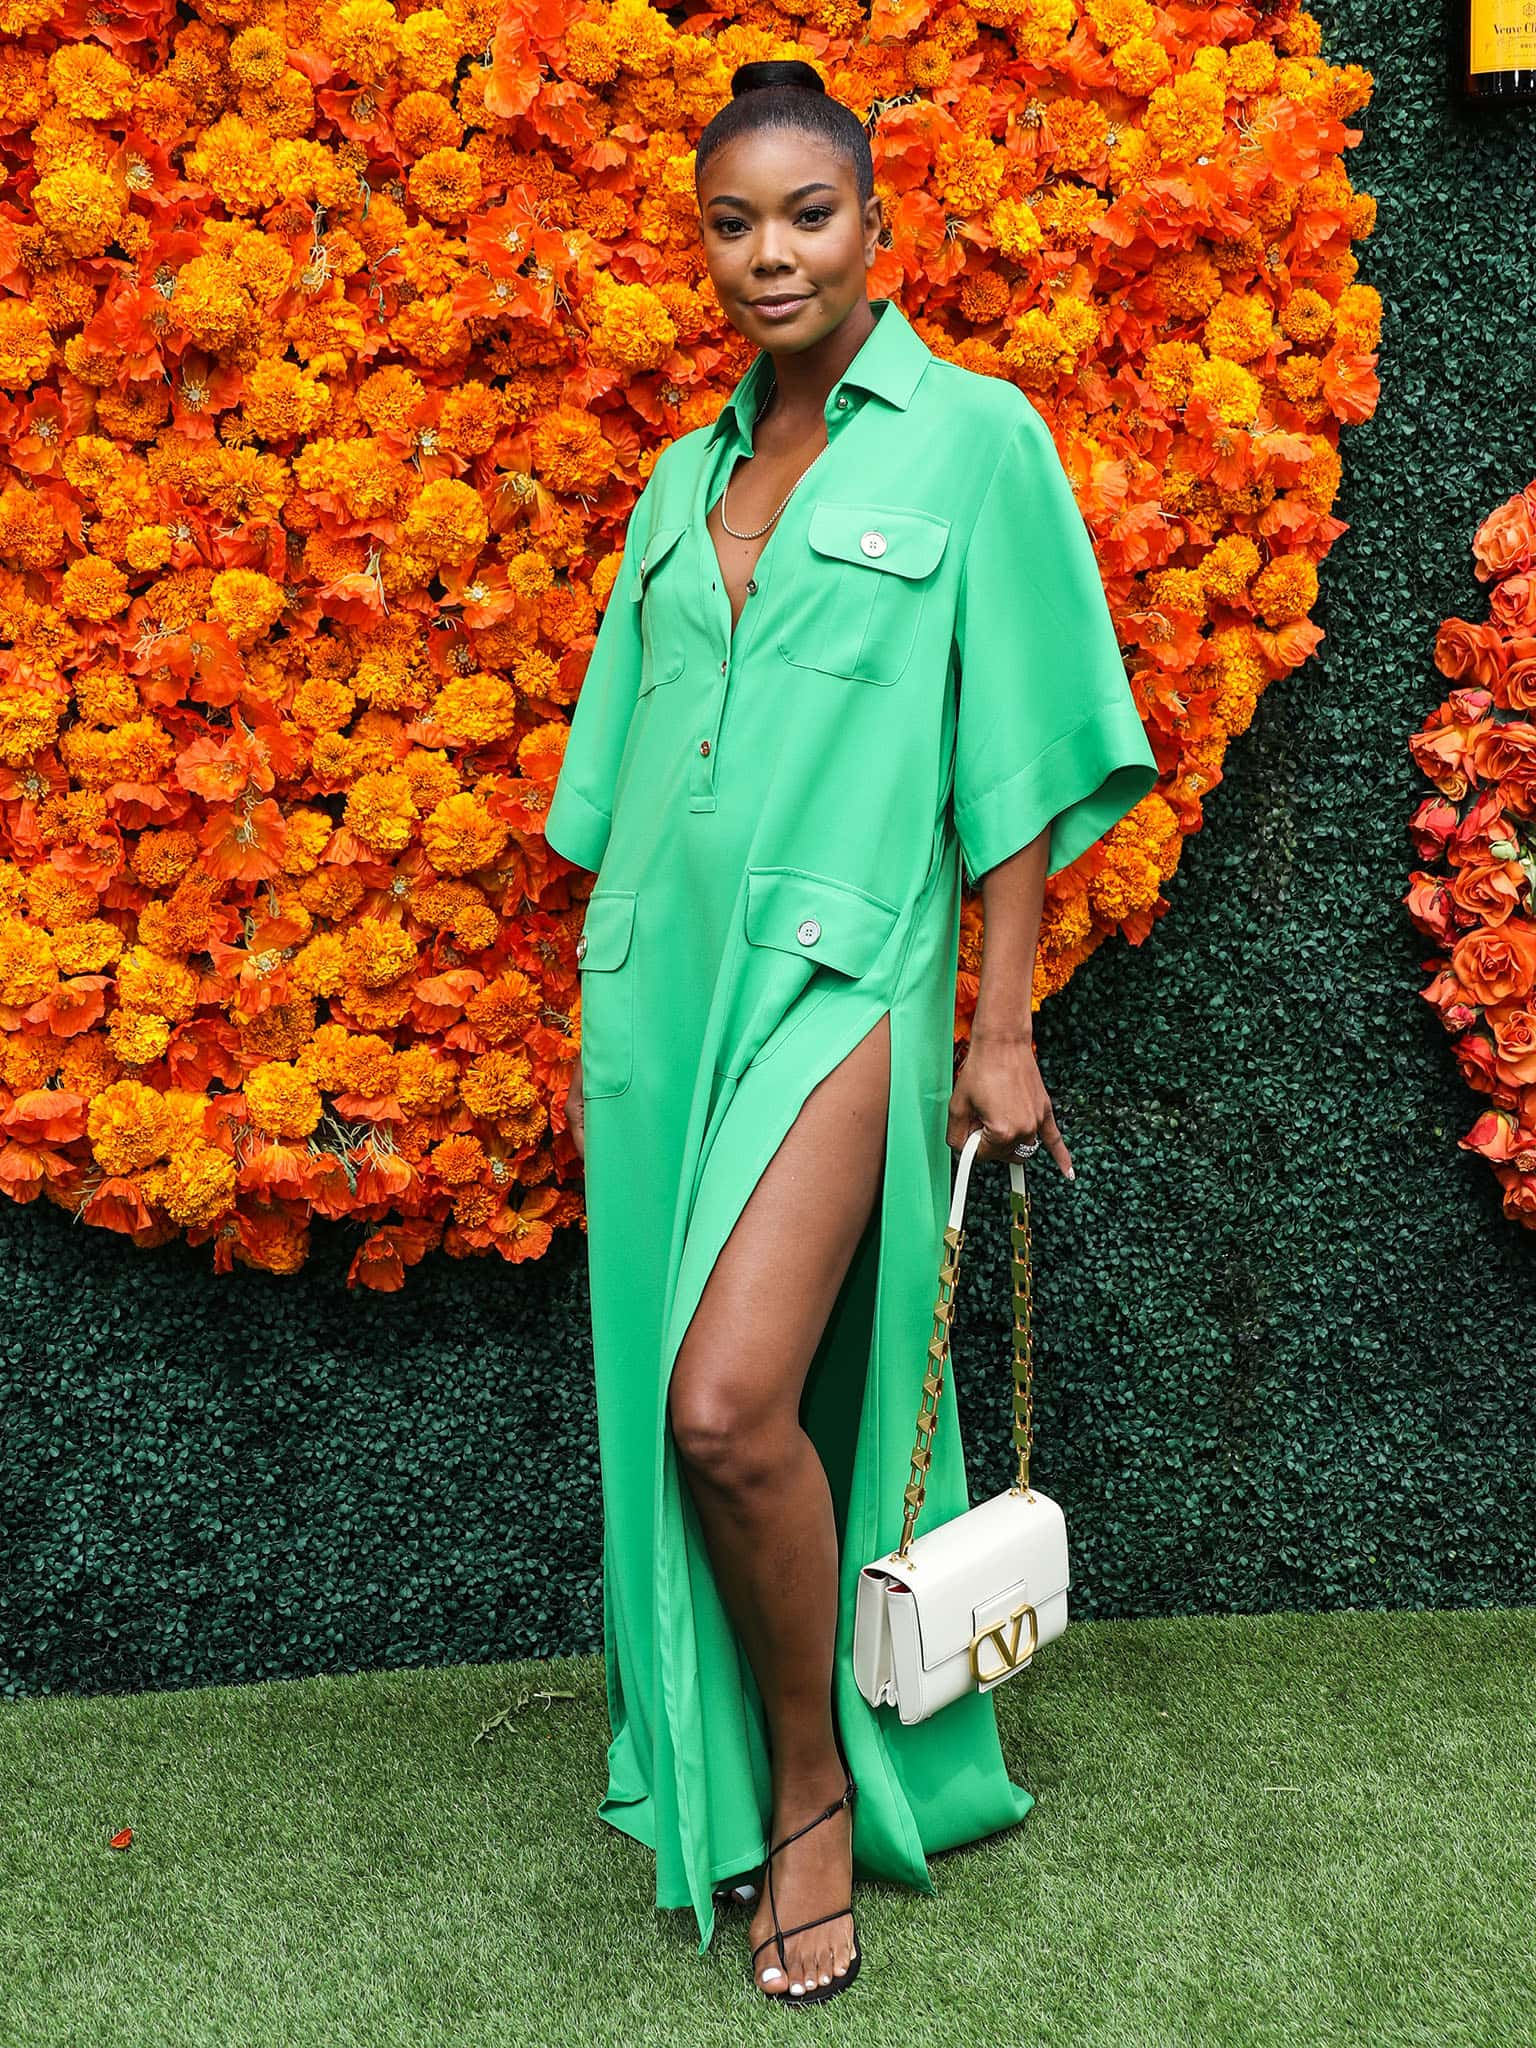 Gabrielle Union arrives solo at the Veuve Clicquot Polo Classic Los Angeles 2021 on October 2, 2021